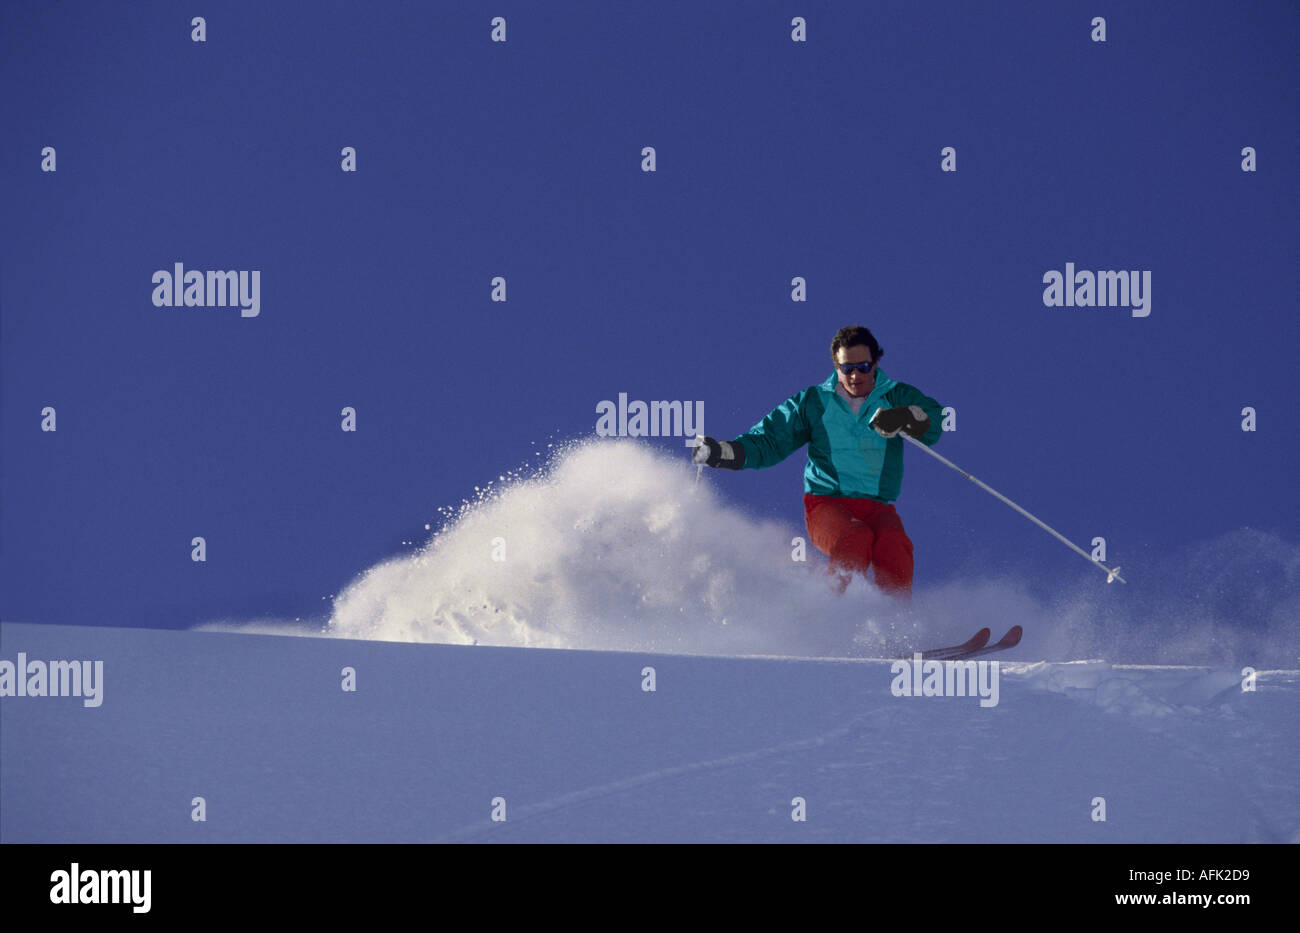 Archive photo (Circa 1984). A skier skis powder snow in The 3 Valleys area at the resort of Courchevel 1850, Savoie, France.. - Stock Image